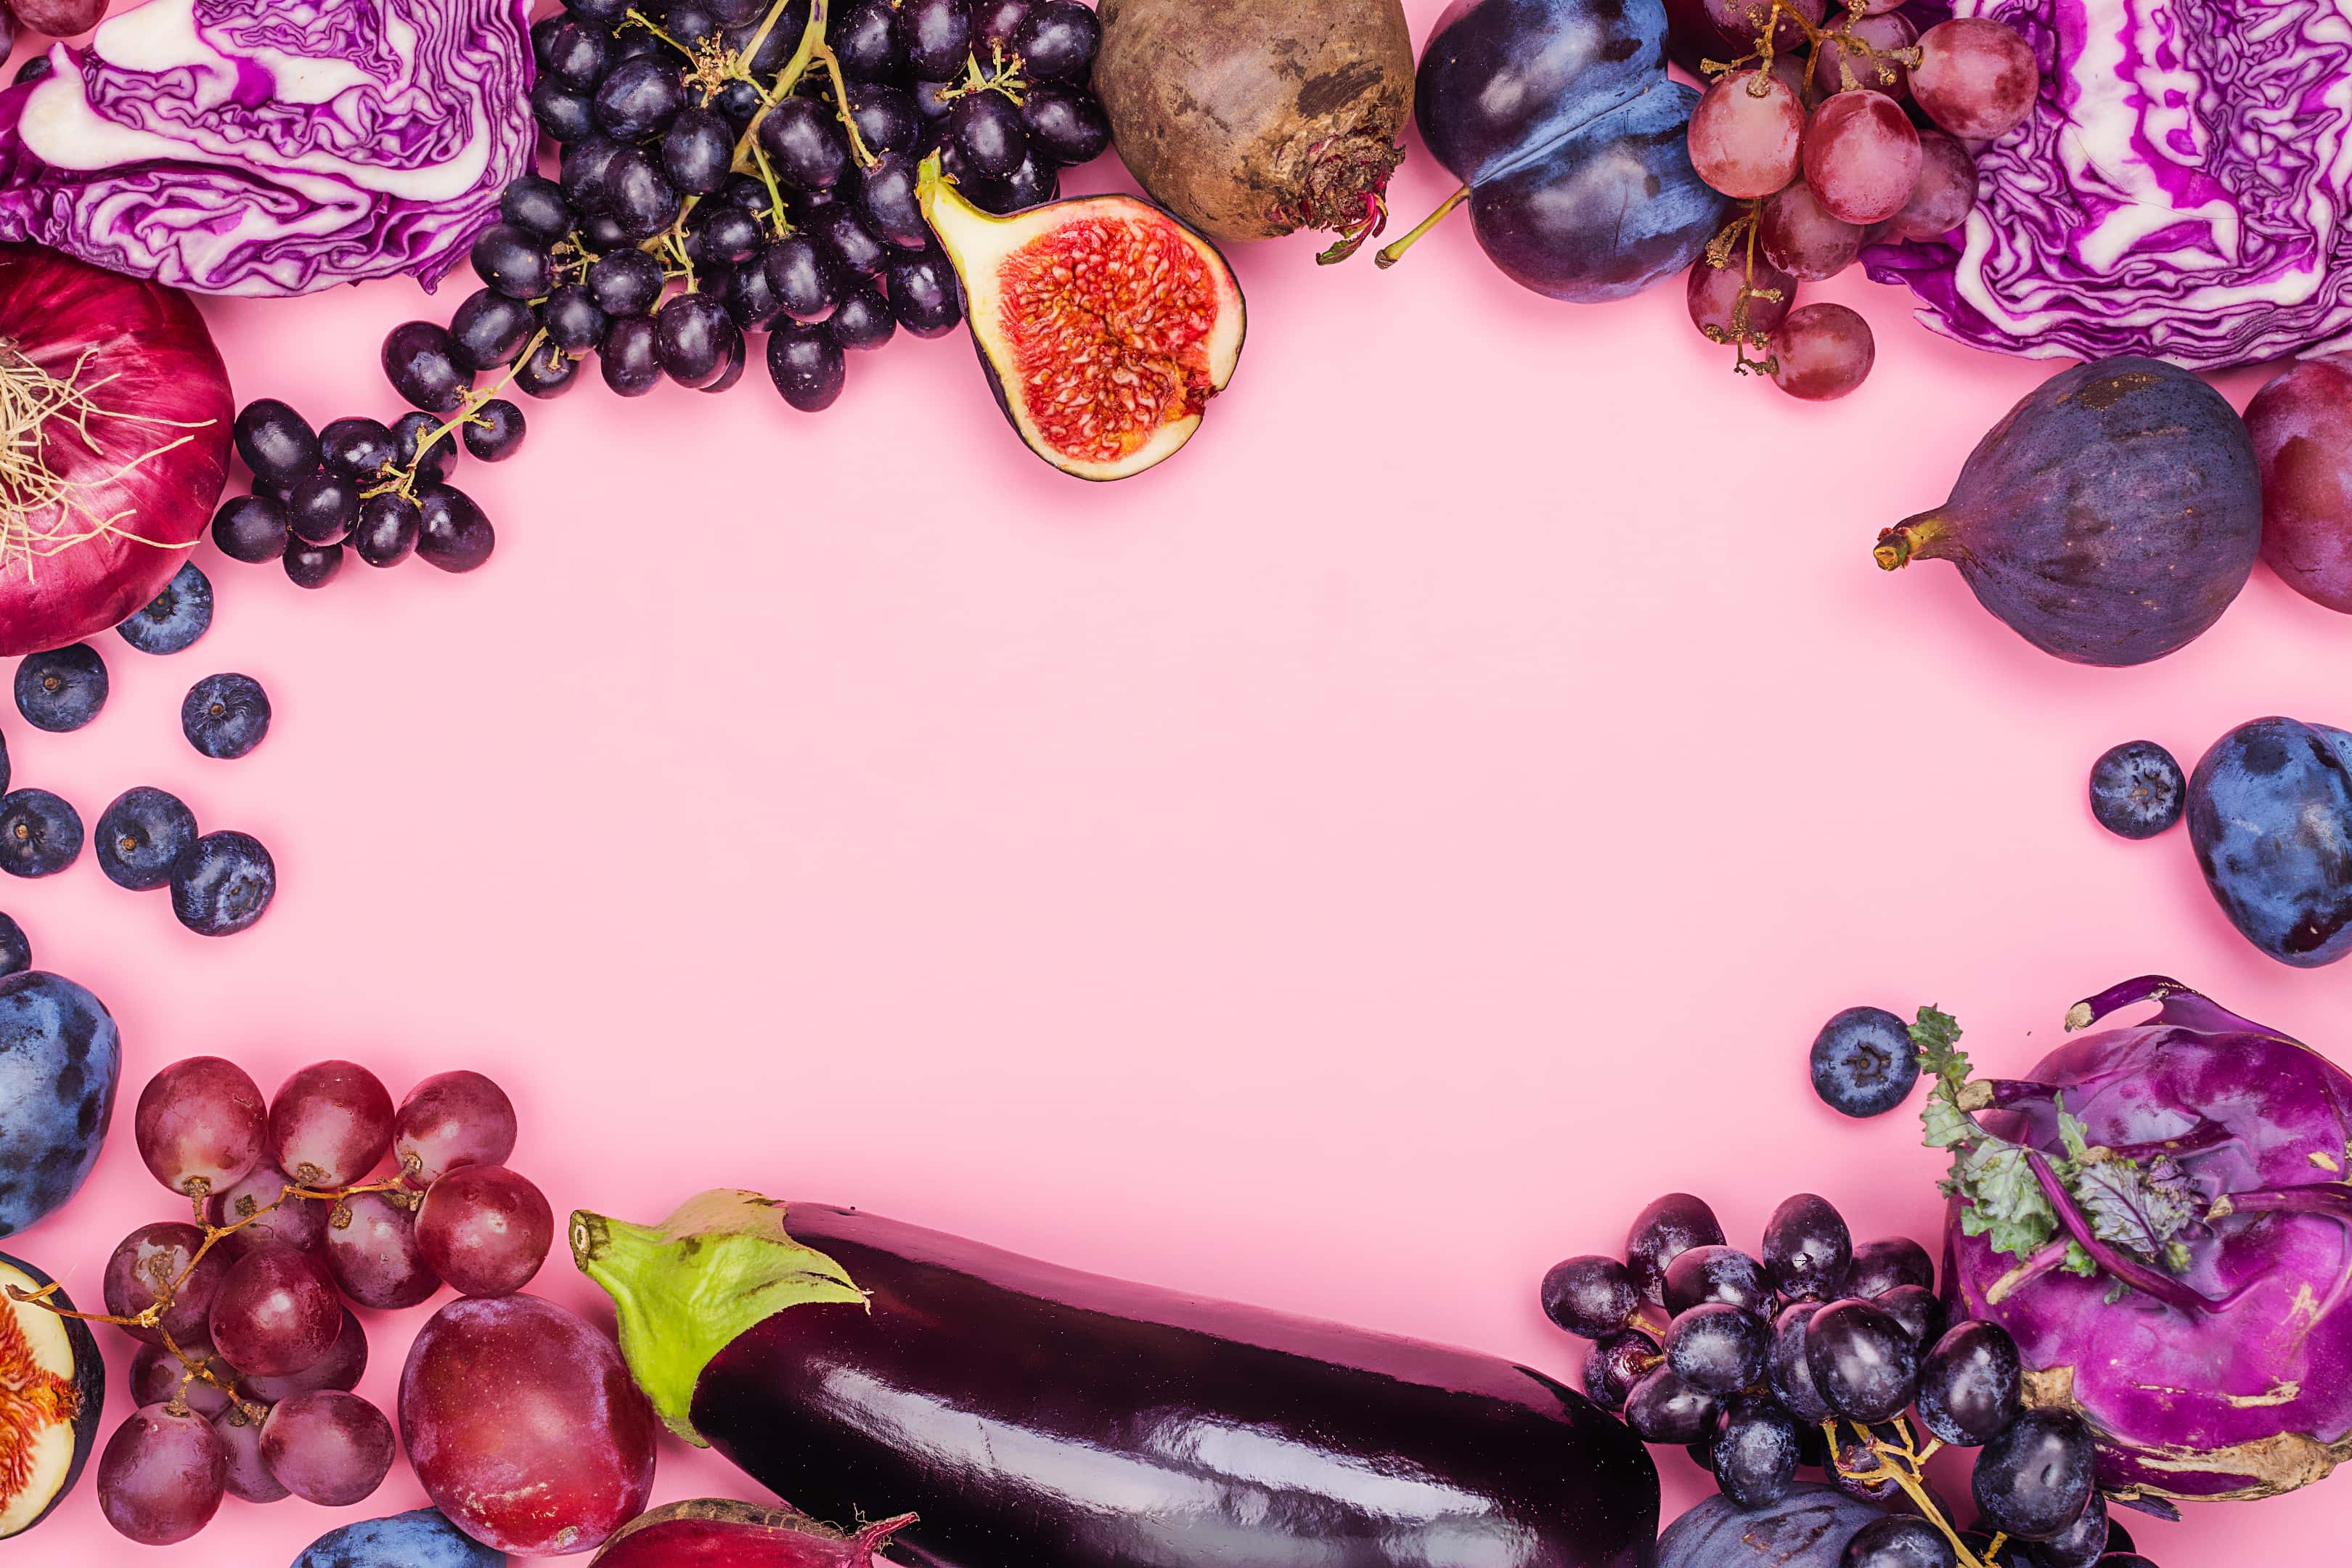 Selection of purple fruit grapes plums blueberries and figs